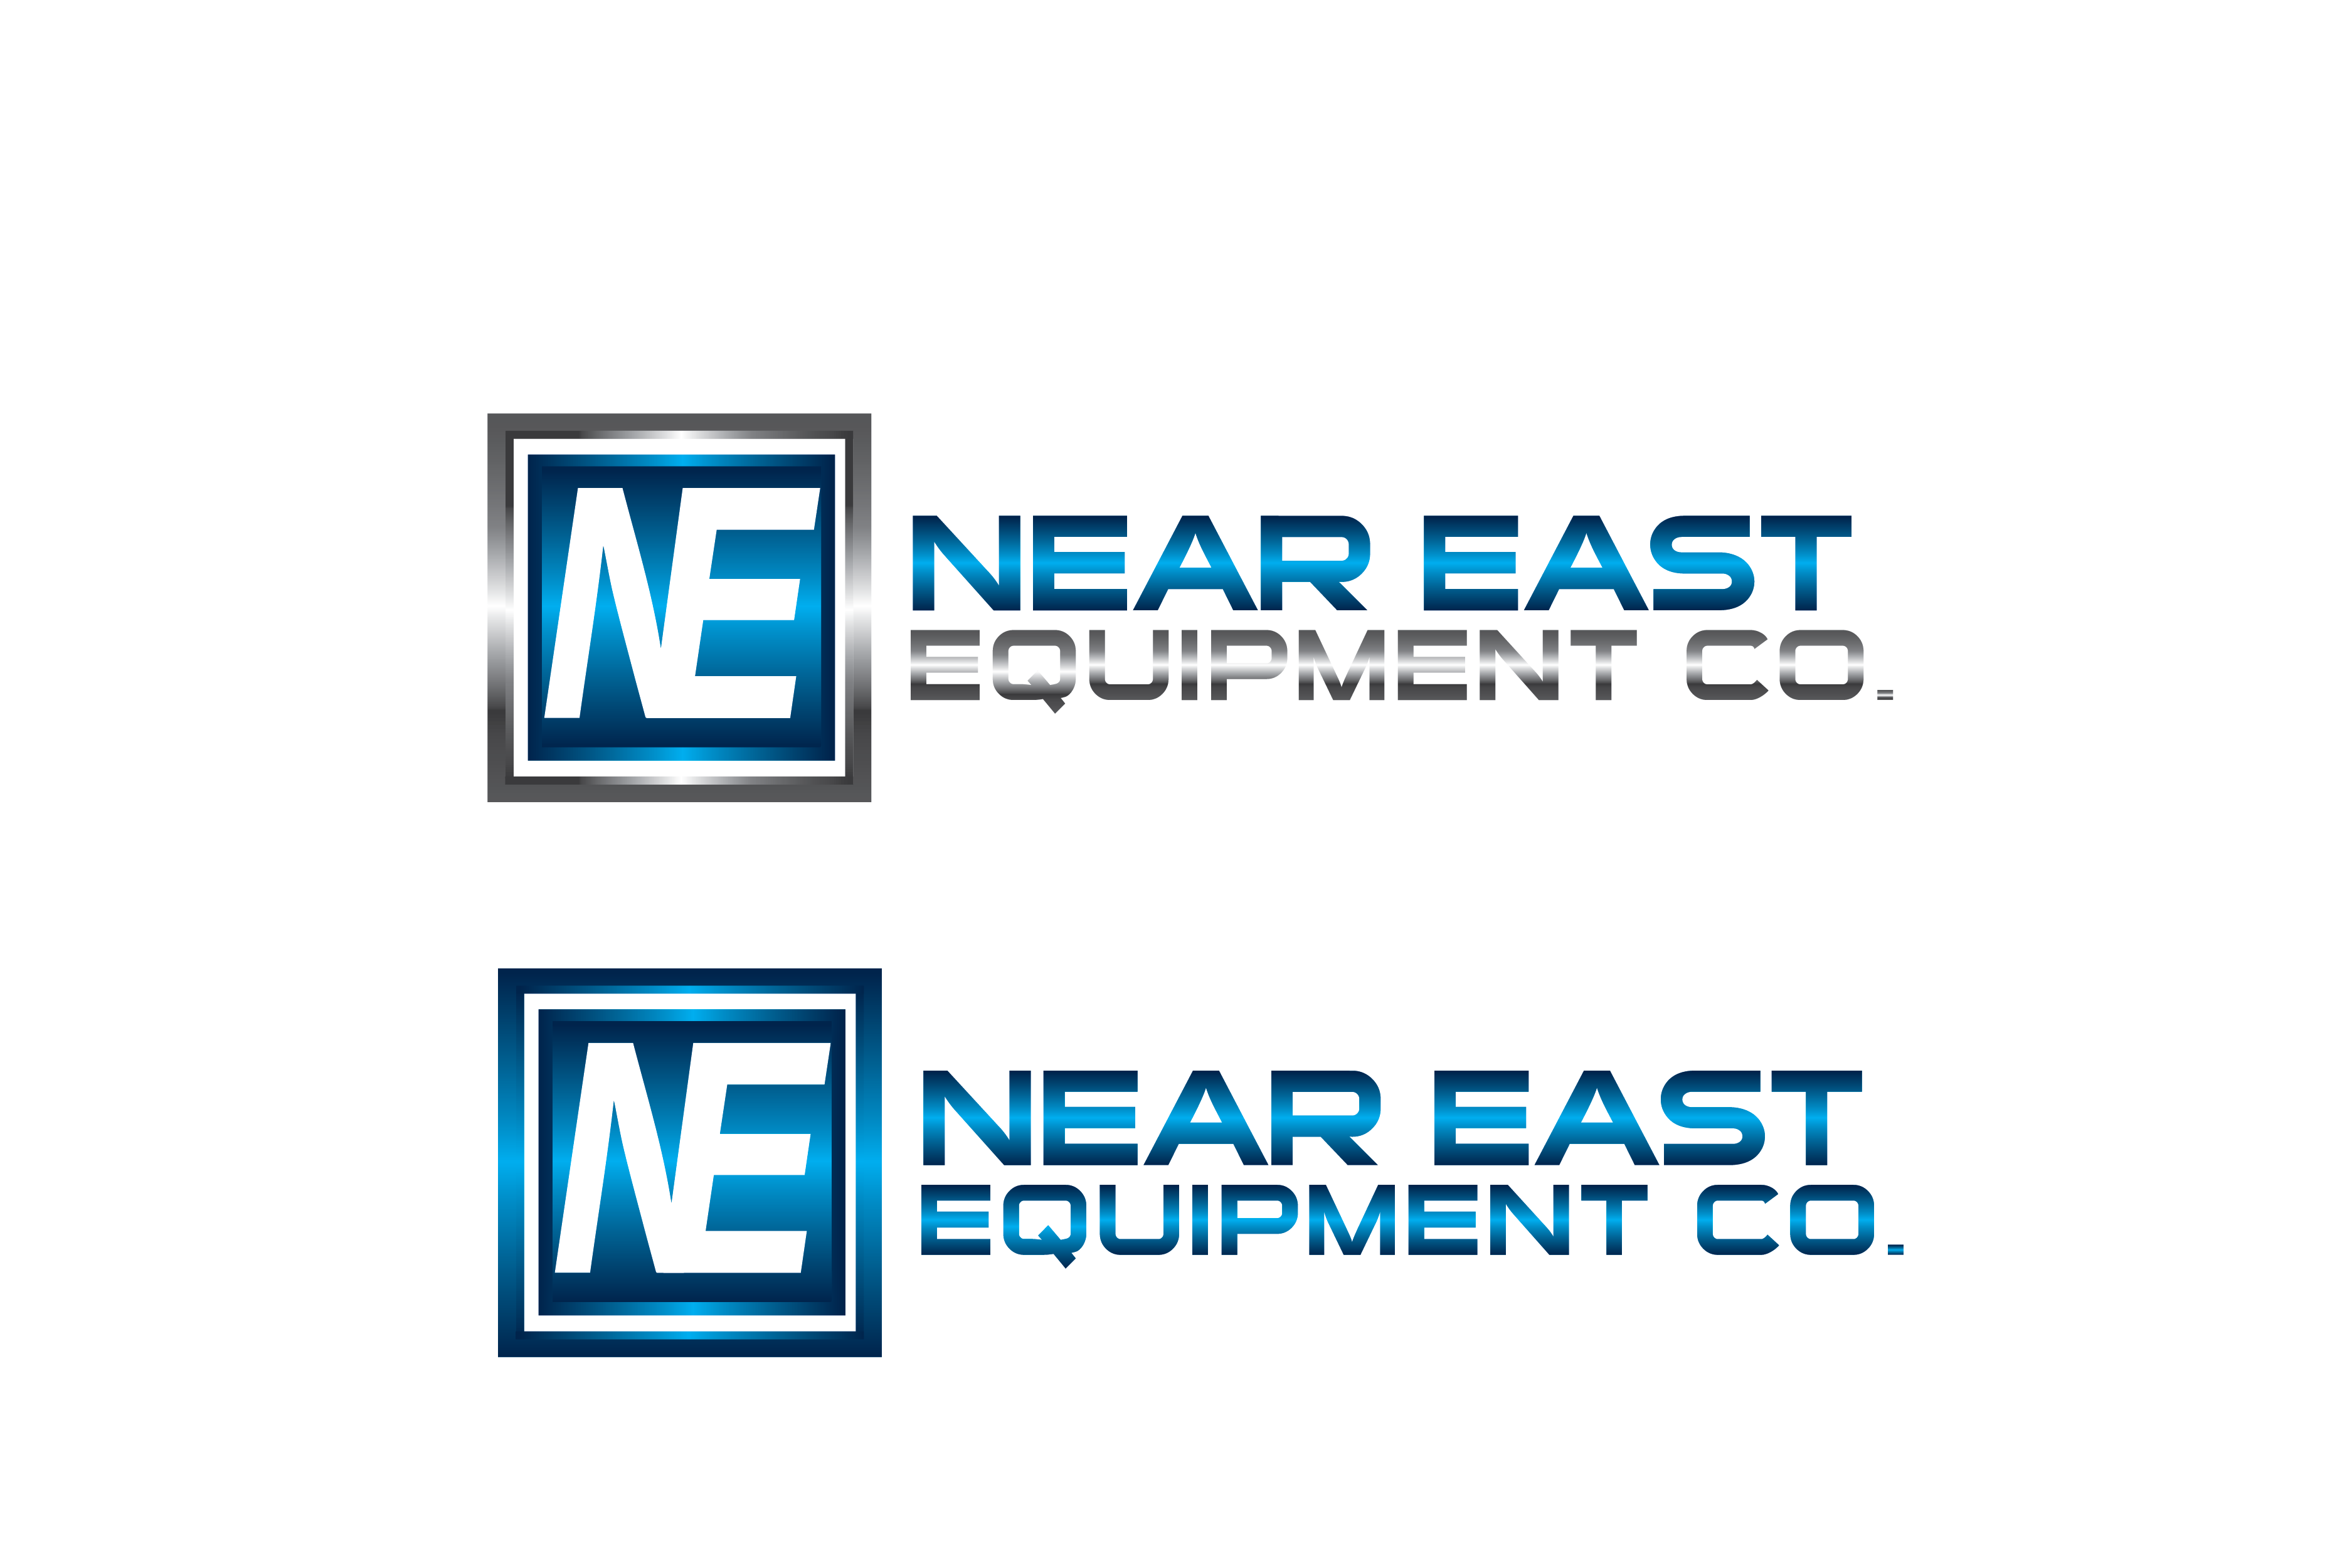 Logo Design by Private User - Entry No. 213 in the Logo Design Contest Imaginative Logo Design for The Near East Equipment Co..